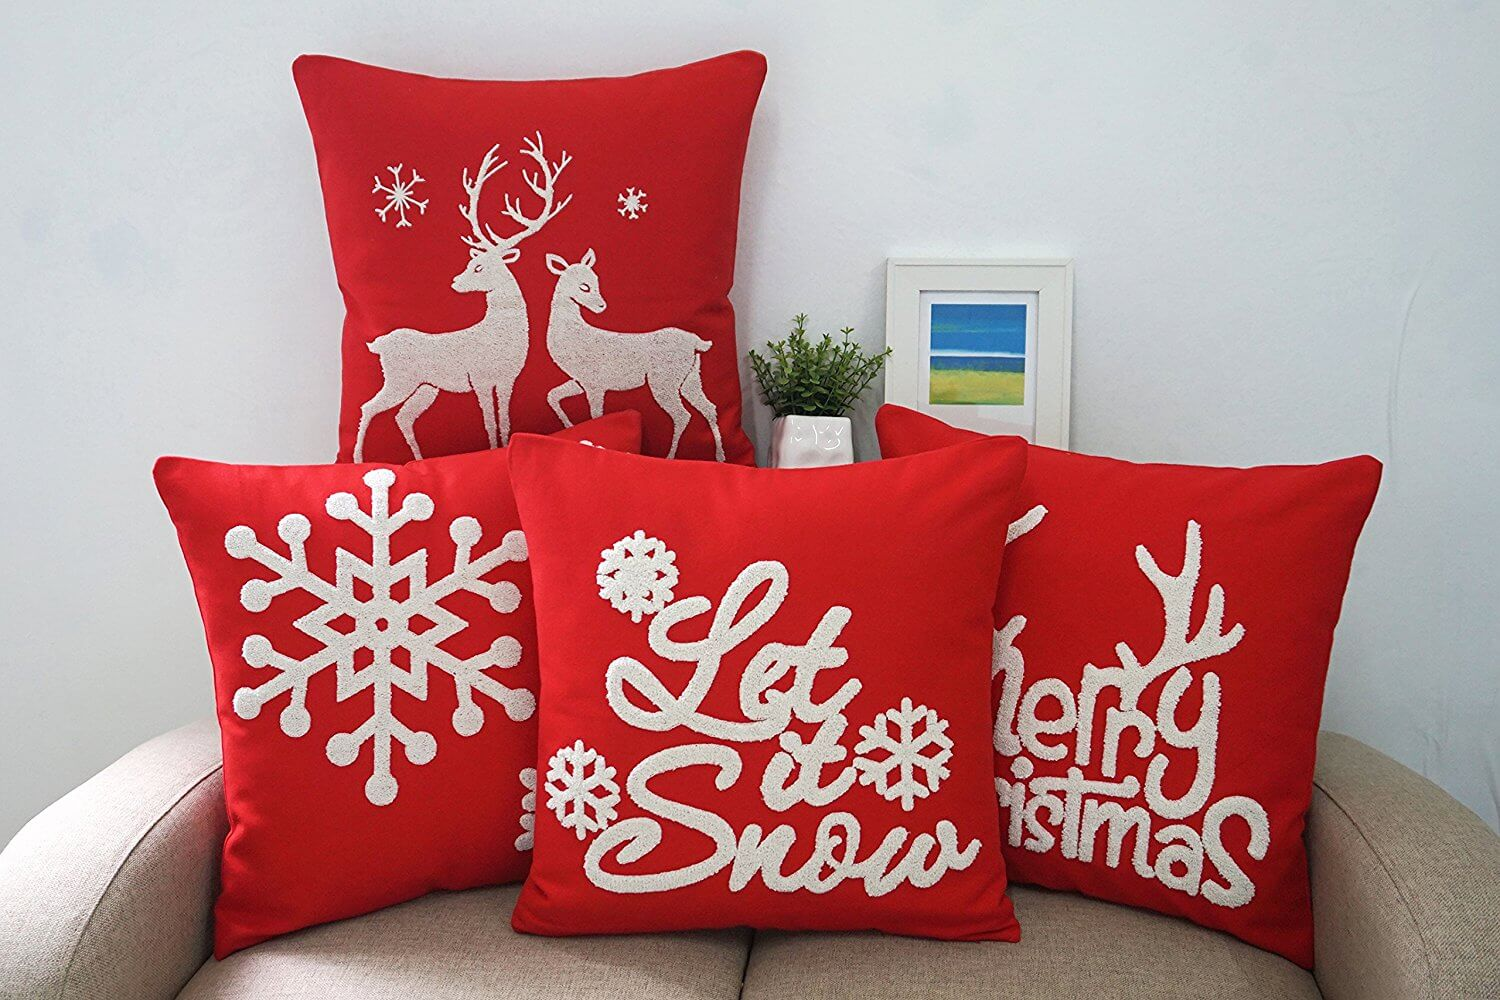 Diy Decorative Christmas Pillows : DIY Felt Holiday Pillows - Christmas DIY